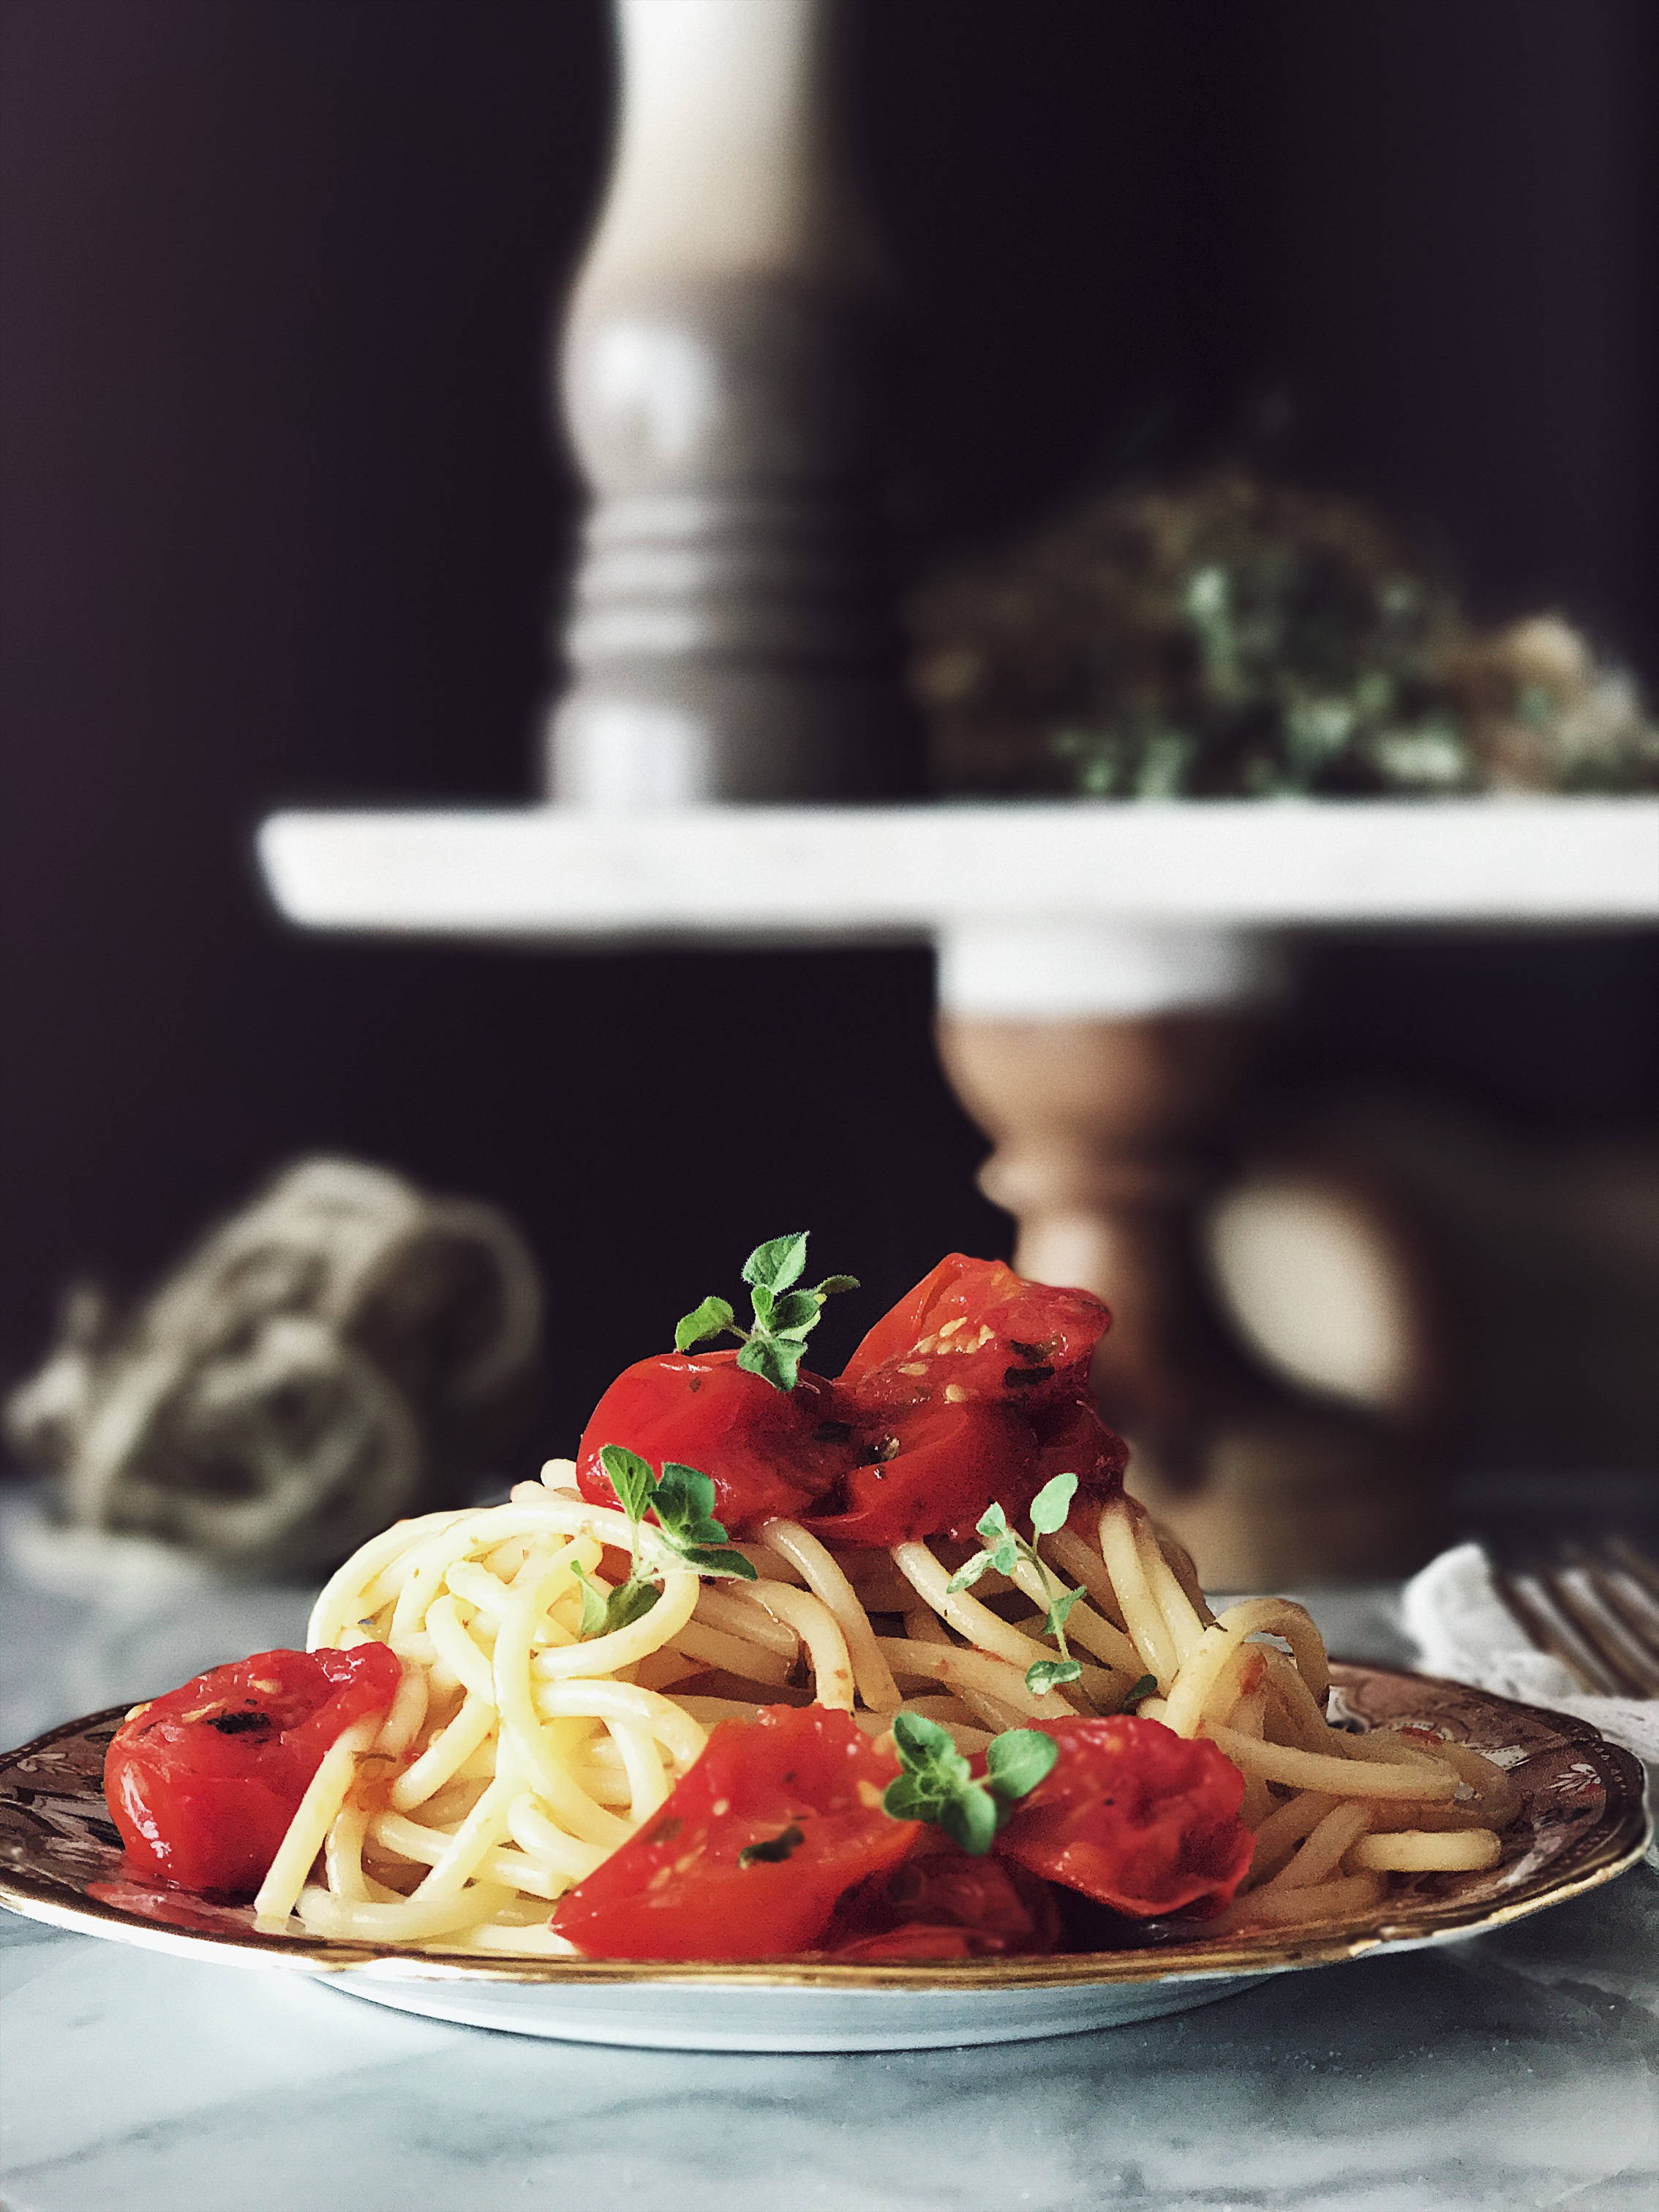 Roasted tomato sauce with fresh oregano authentic italian recipes a roasted tomato sauce recipe that is easy to make tasty and healthy get forumfinder Images